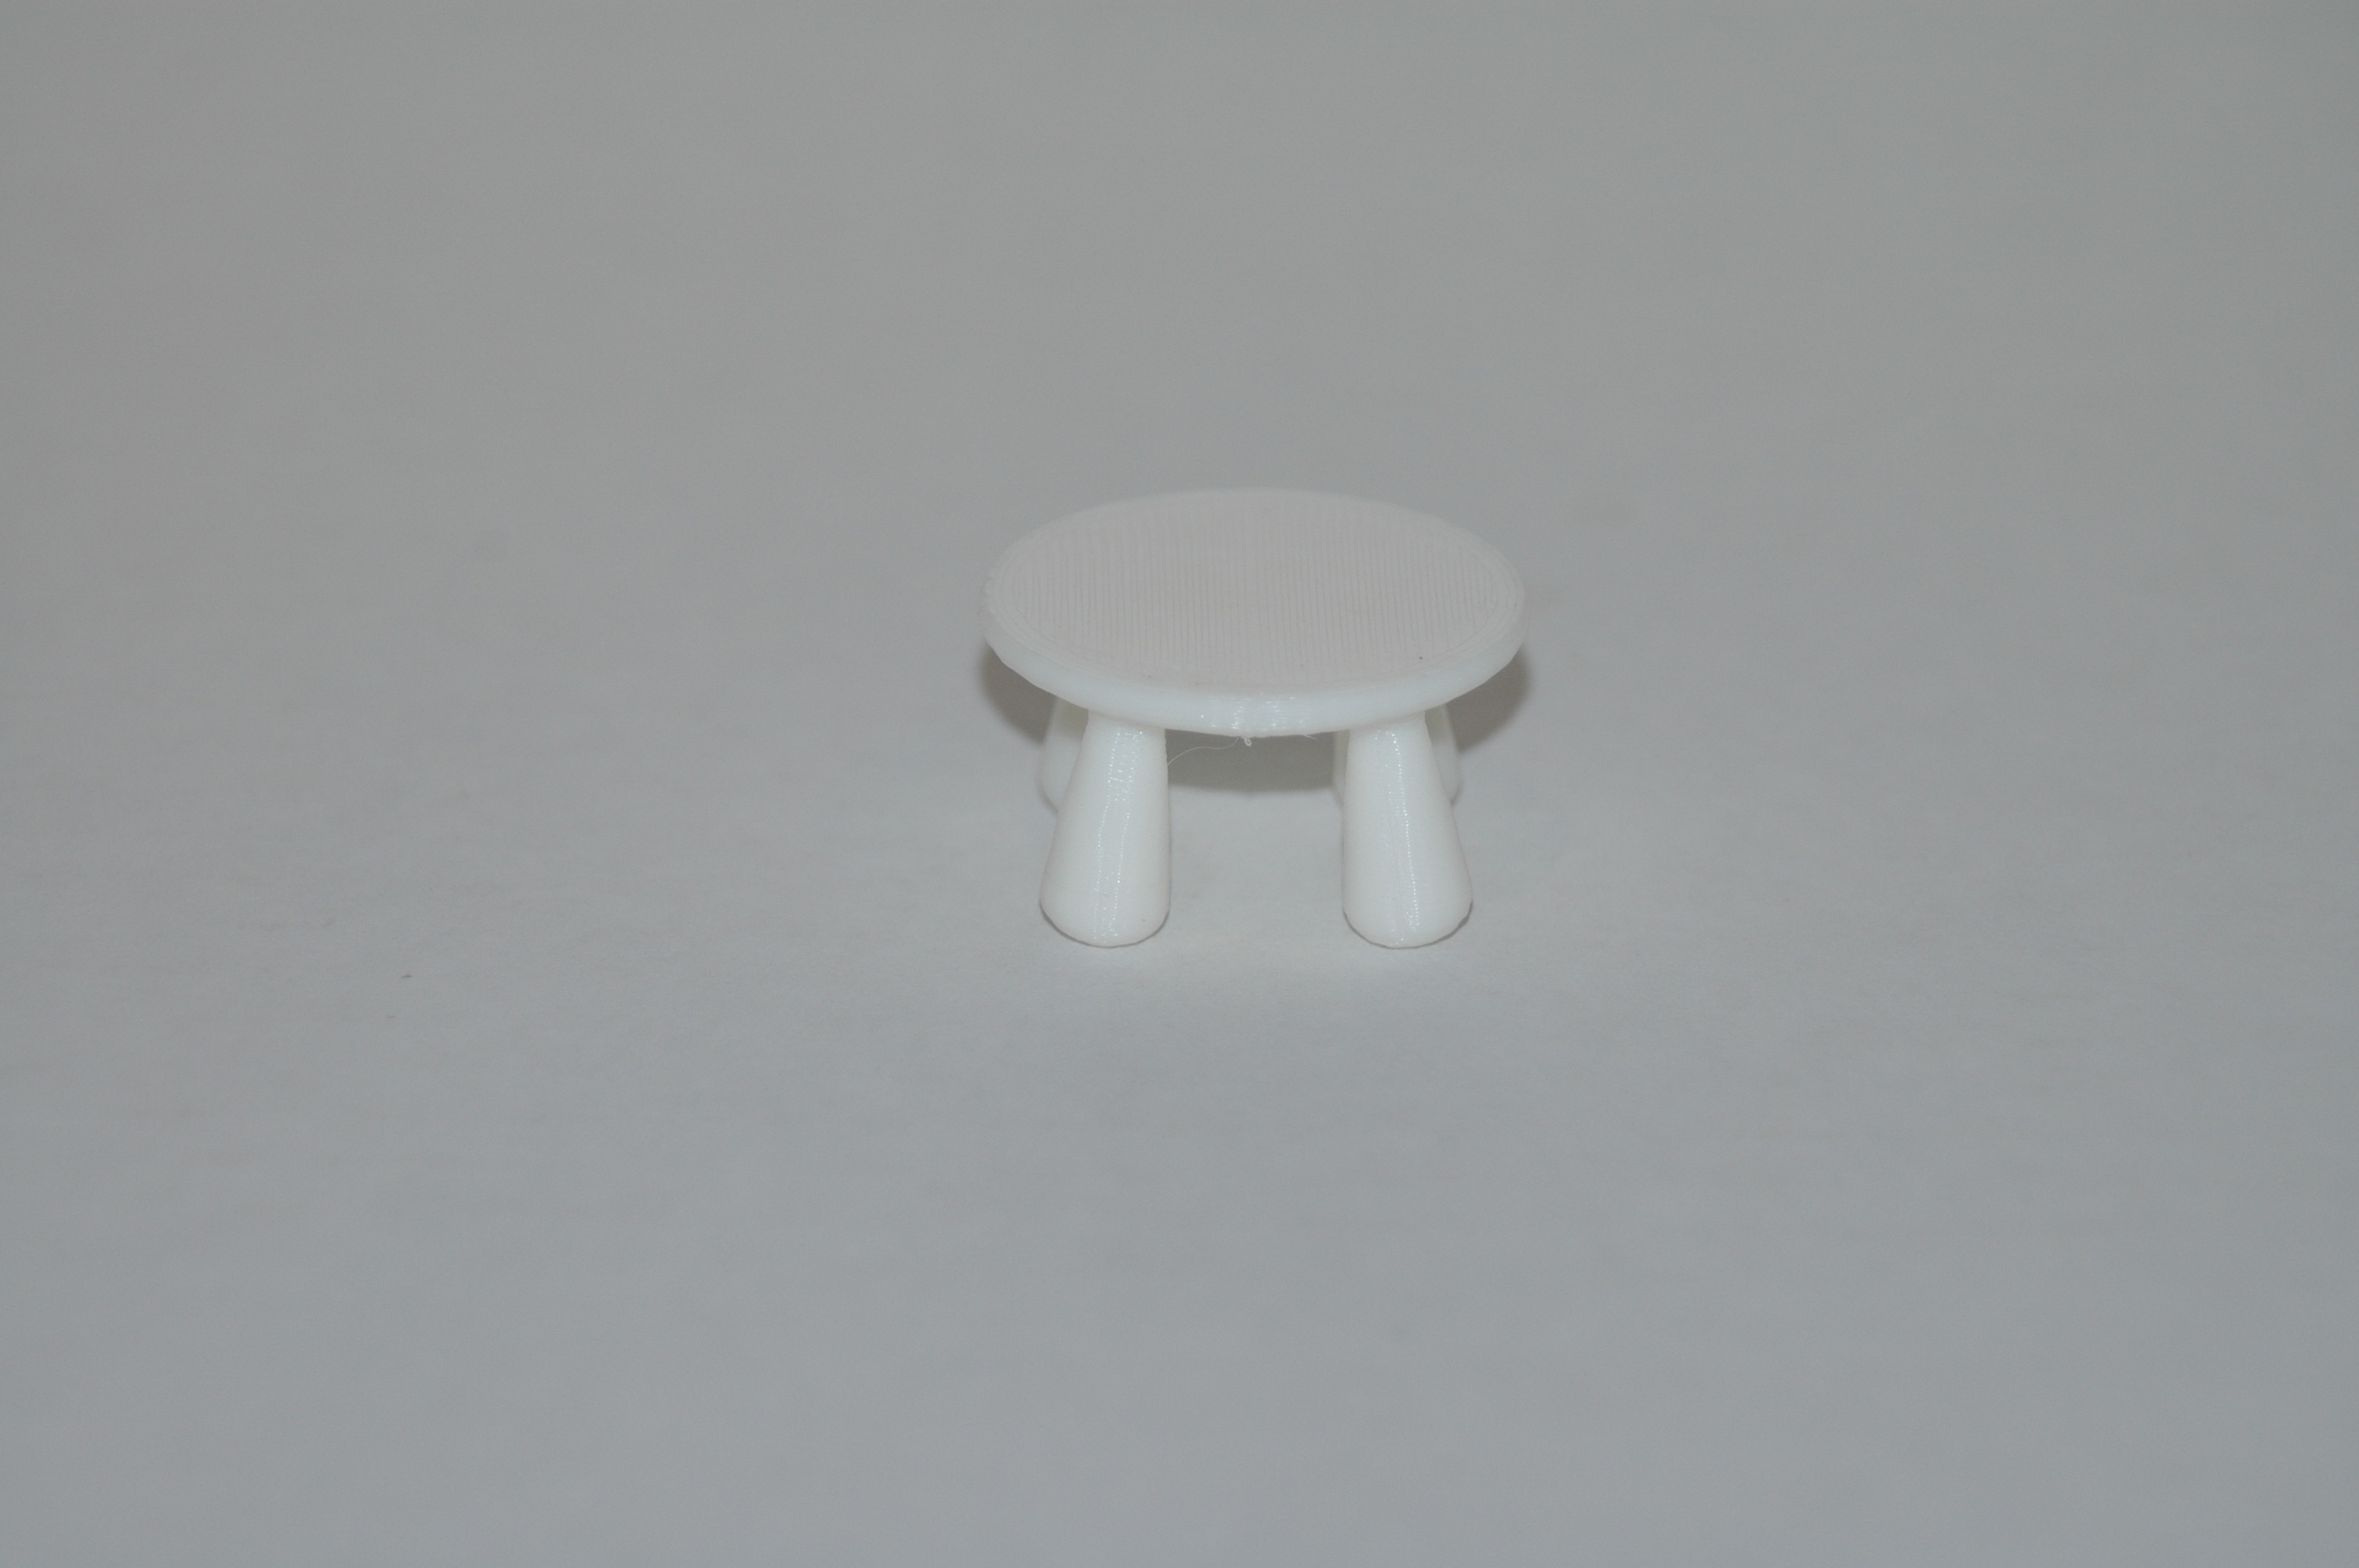 DSC_7243.JPG Download STL file Mini Doll House Stool • 3D printable template, Ollie